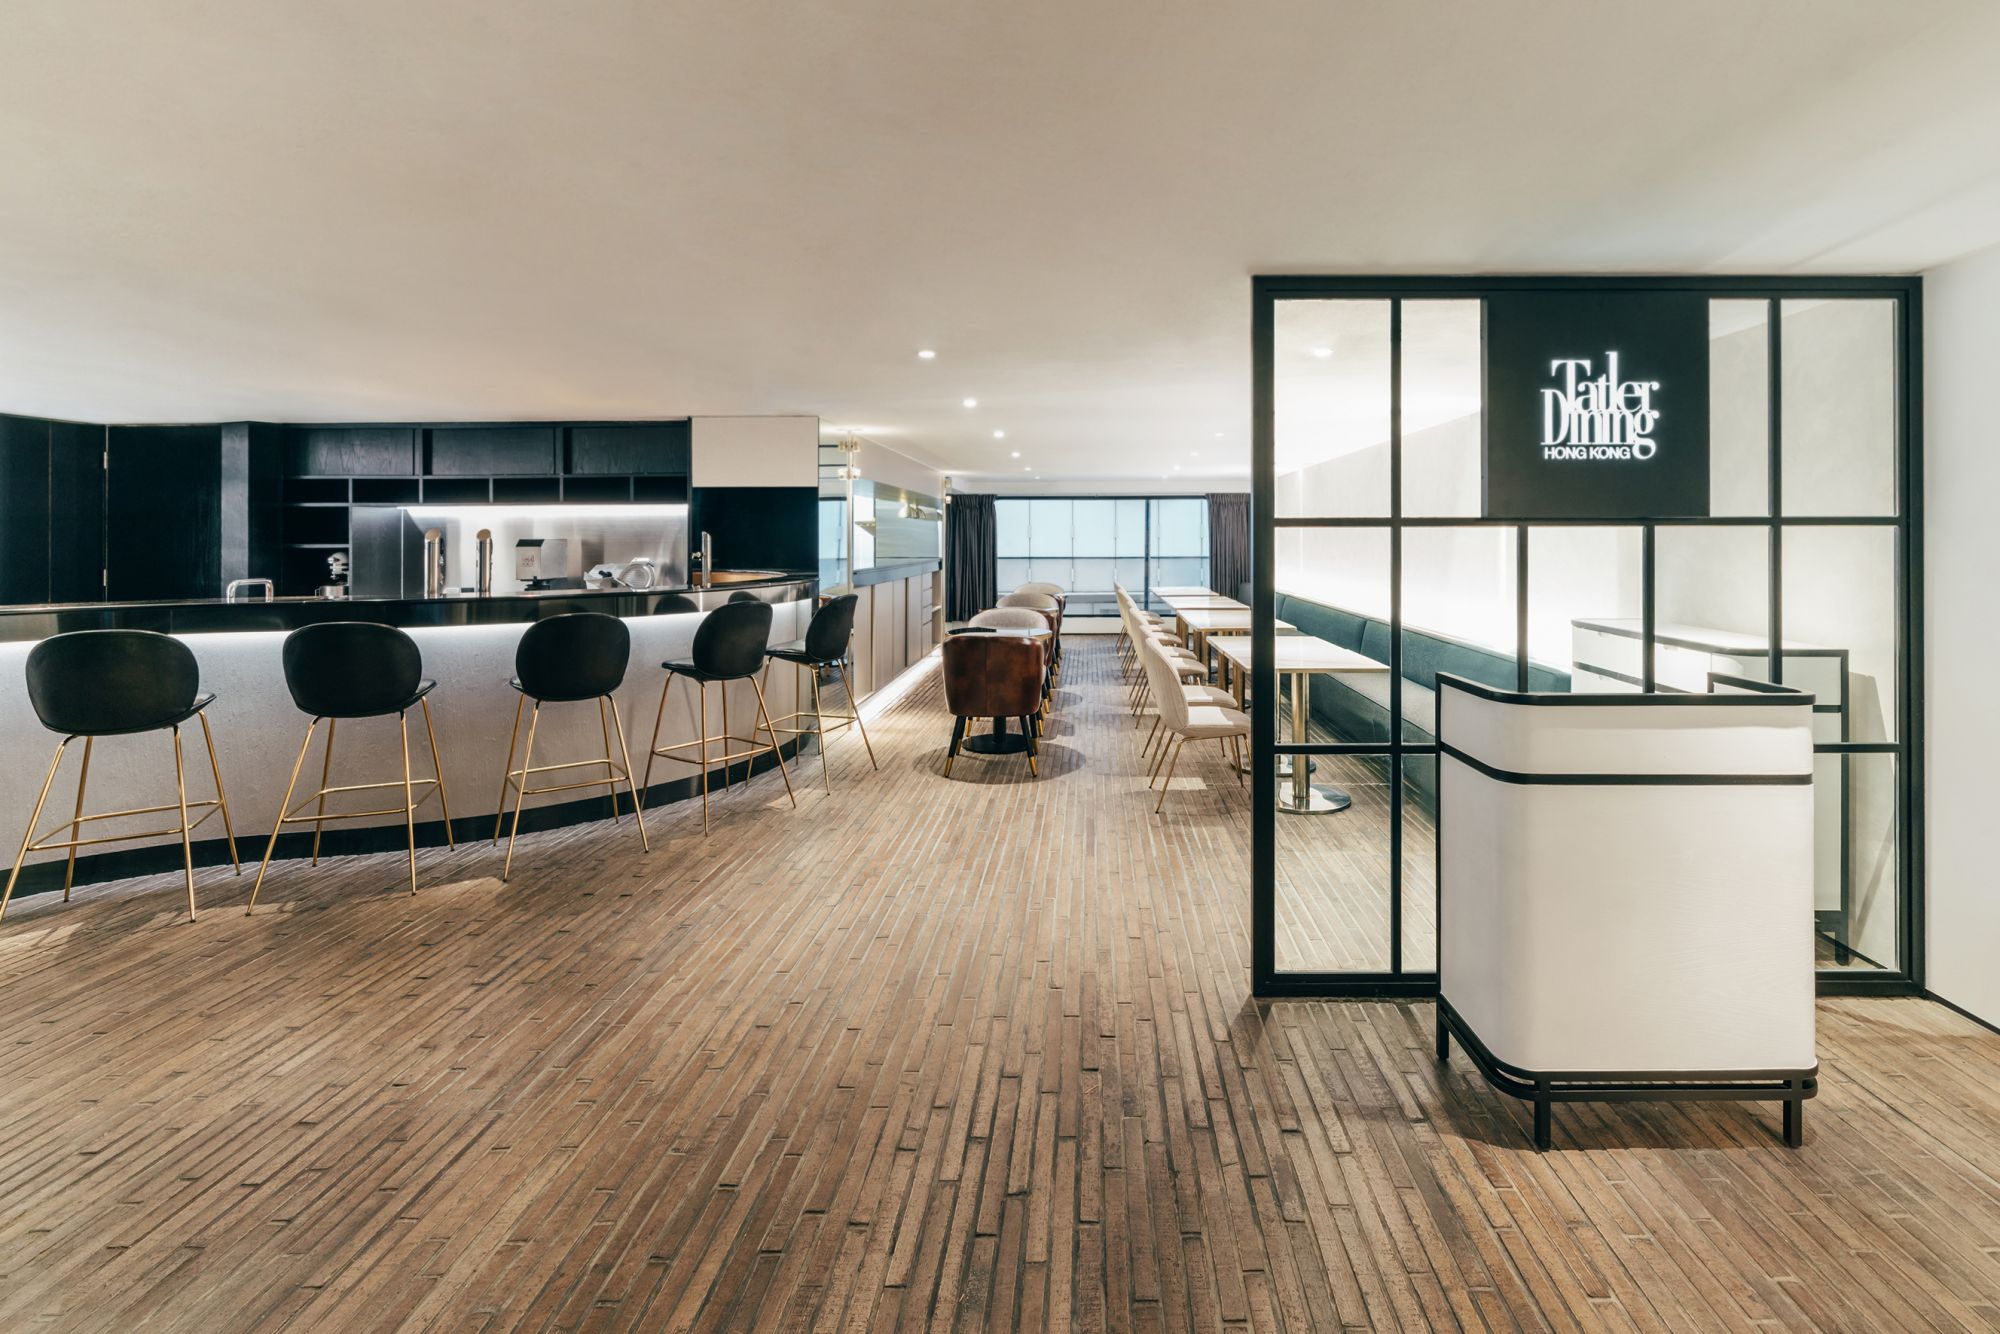 Introducing Tatler Dining Kitchen At Haus, A New Culinary Destination In Central